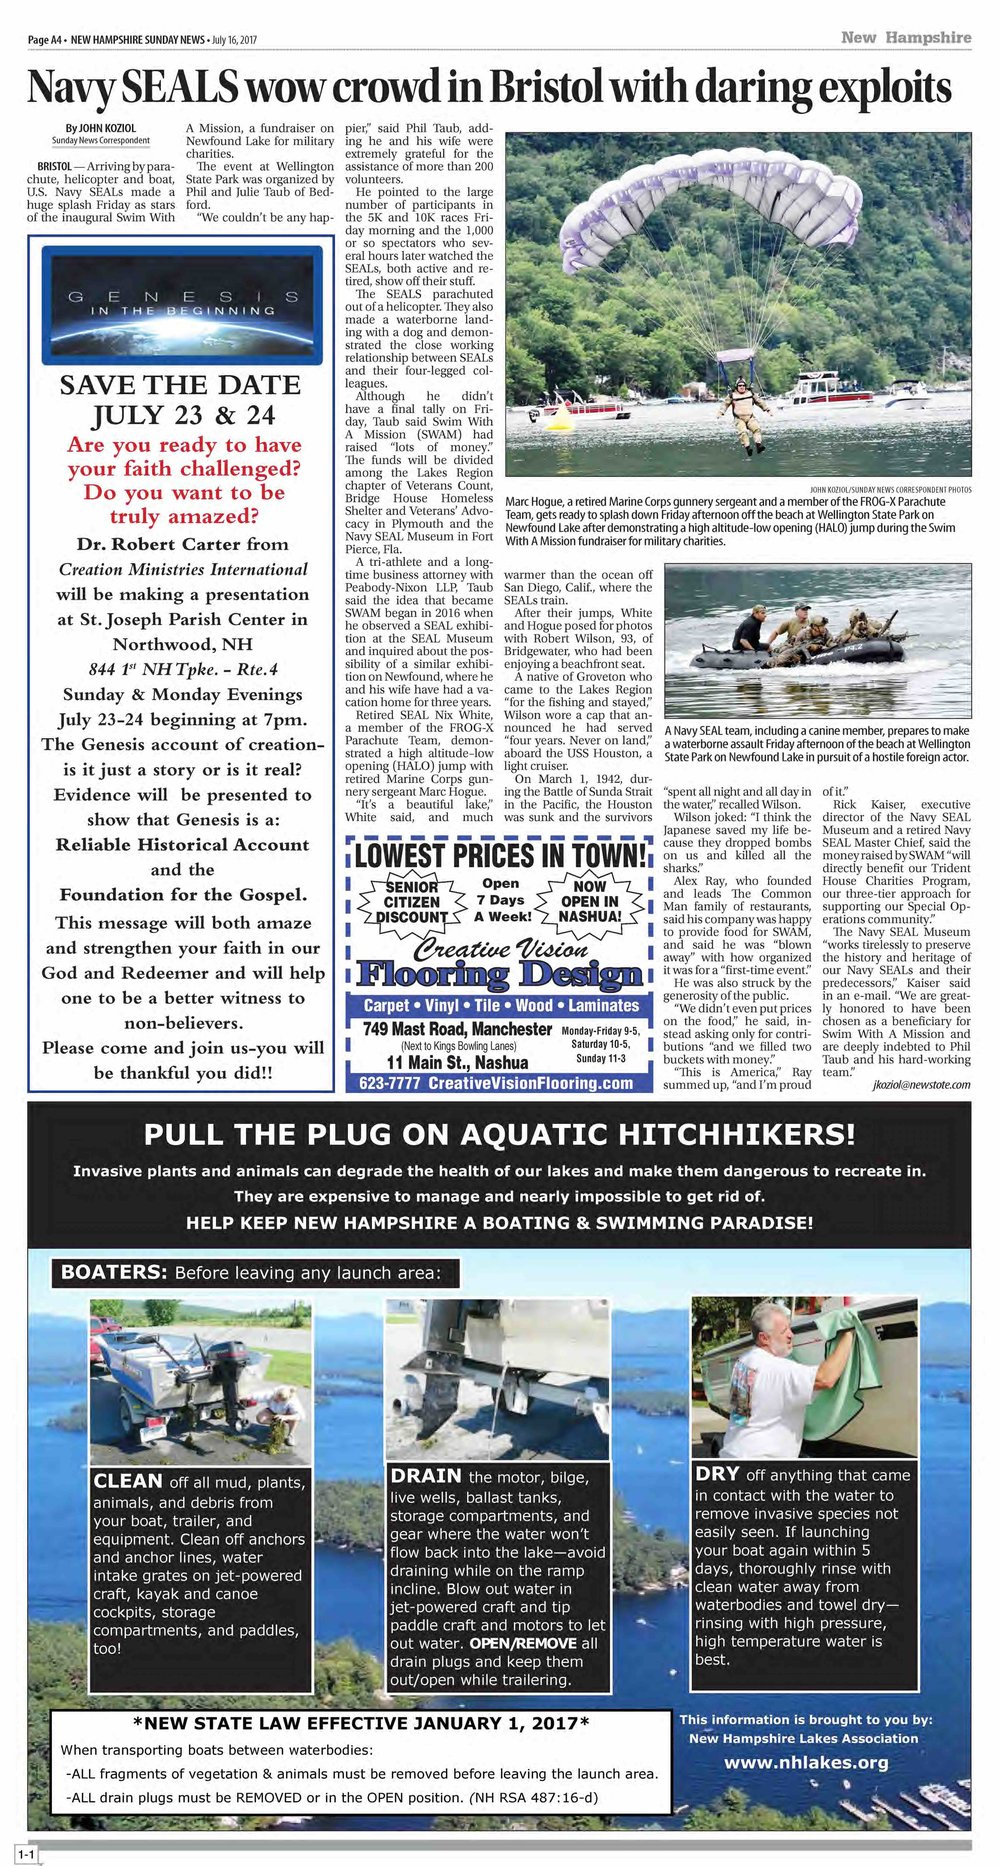 NewHampshireUnionLeader_20170716_A04 - flattened_Page_1.jpg